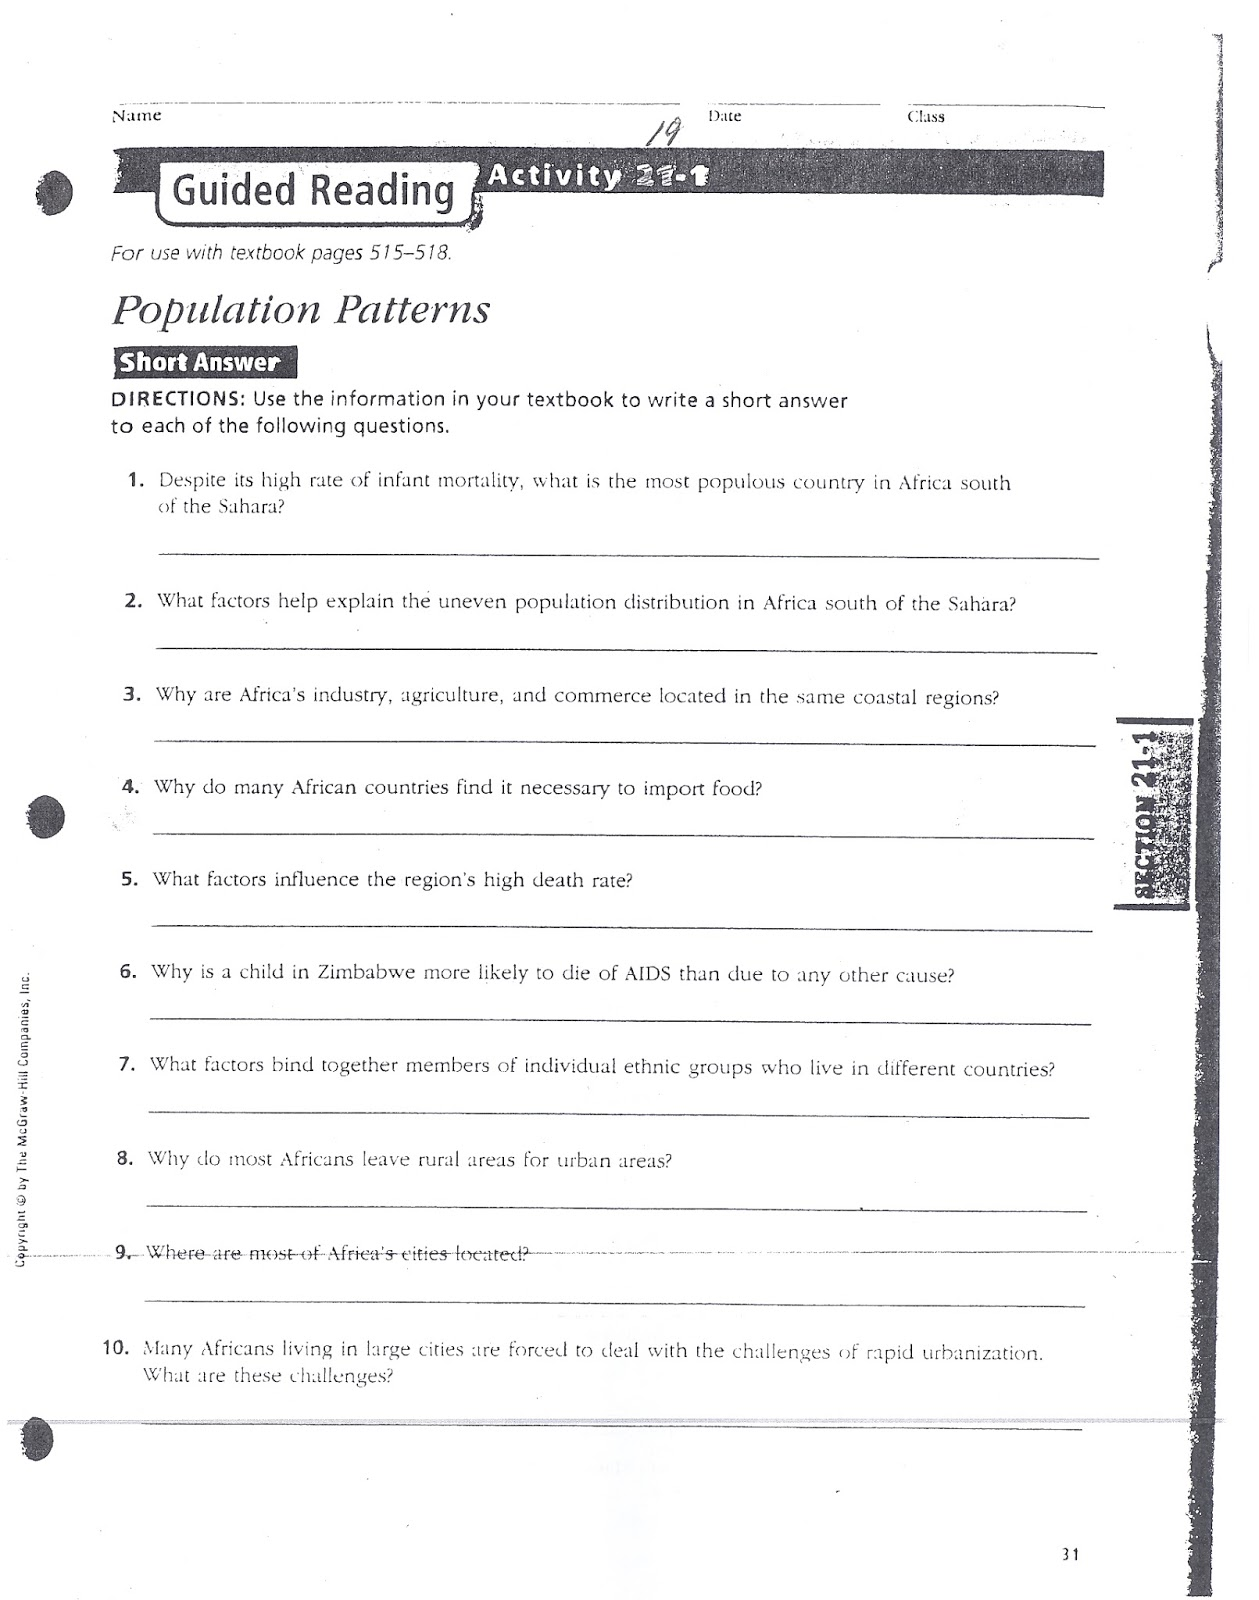 mr e s world geography page world geography 2018 chapter 20 rh acewg blogspot com guided reading activity 21-1 answers us history guided reading activity 21-1 east africa answer key